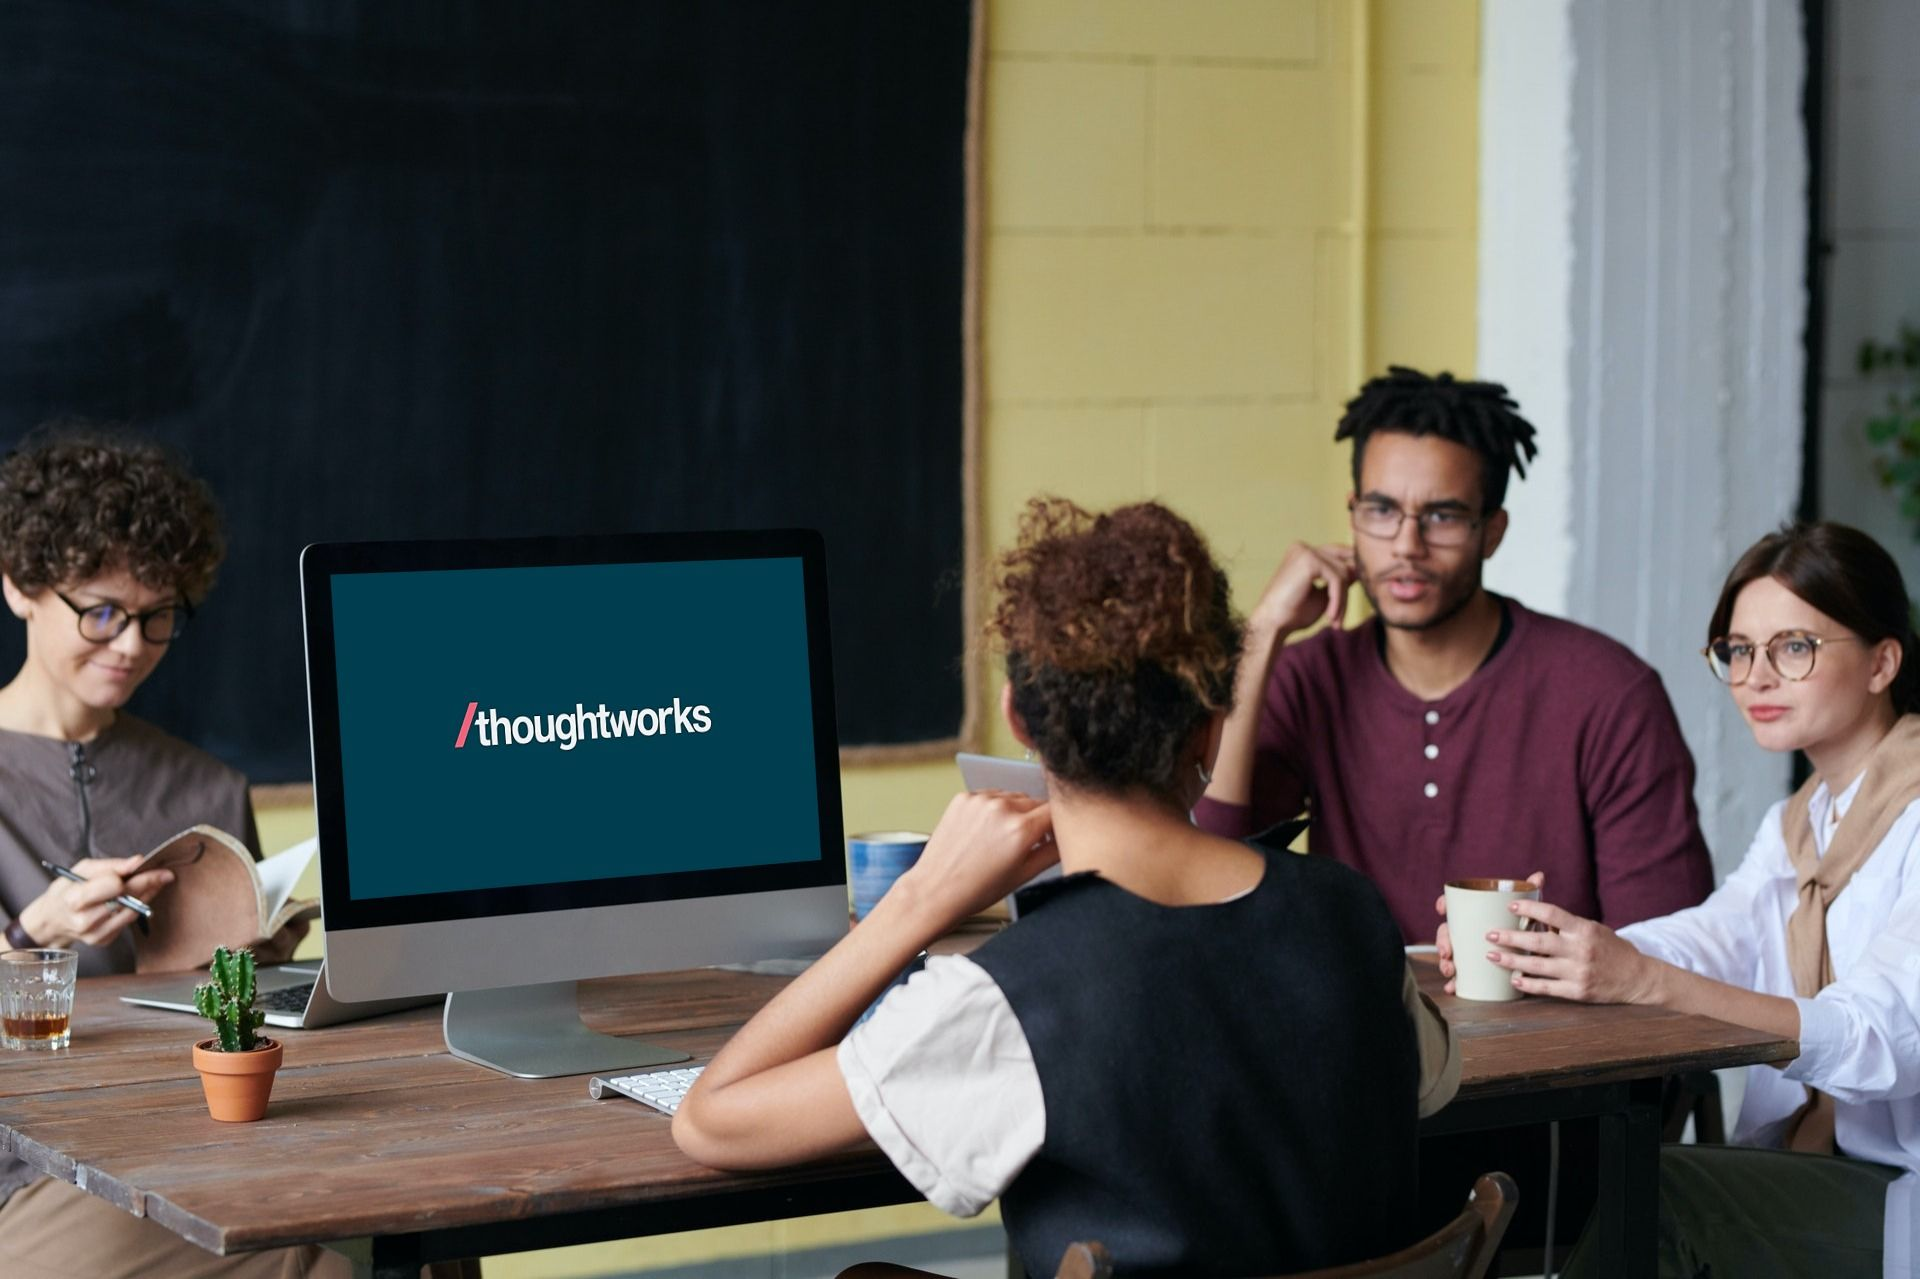 Thoughtworks Initial Public Offering